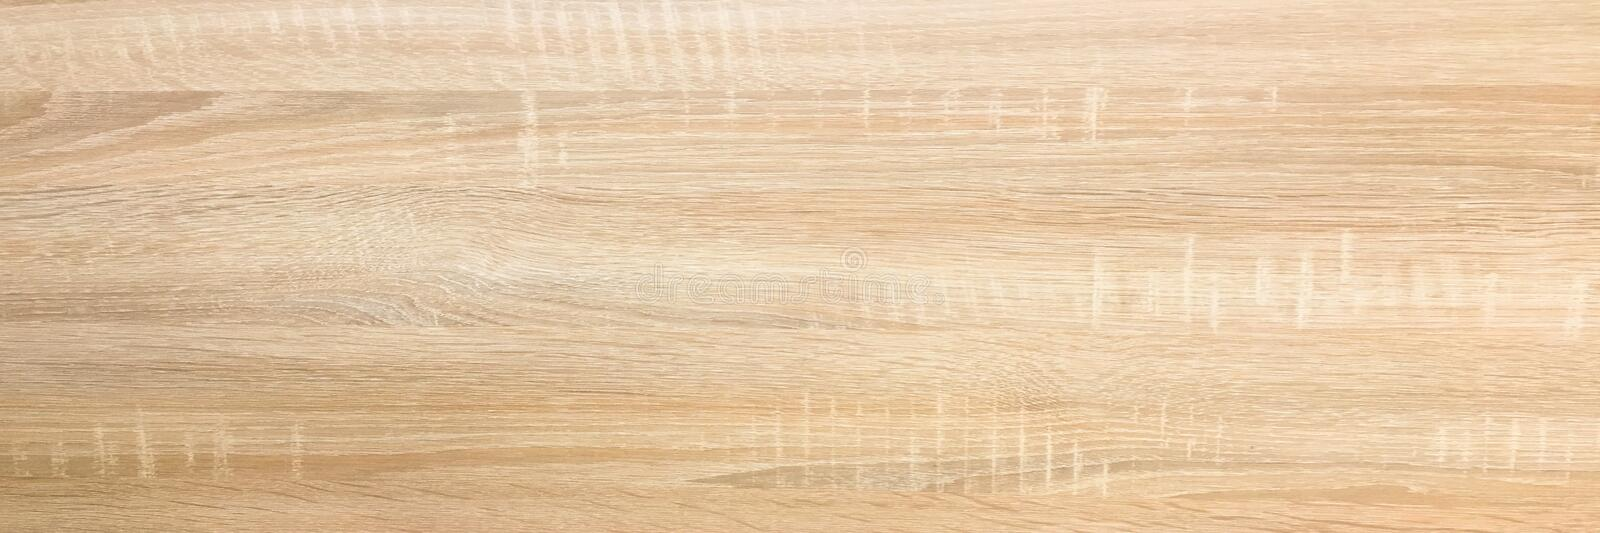 Wood background texture, light weathered rustic oak. faded wooden varnished paint showing woodgrain texture. hardwood washed plank royalty free stock photography